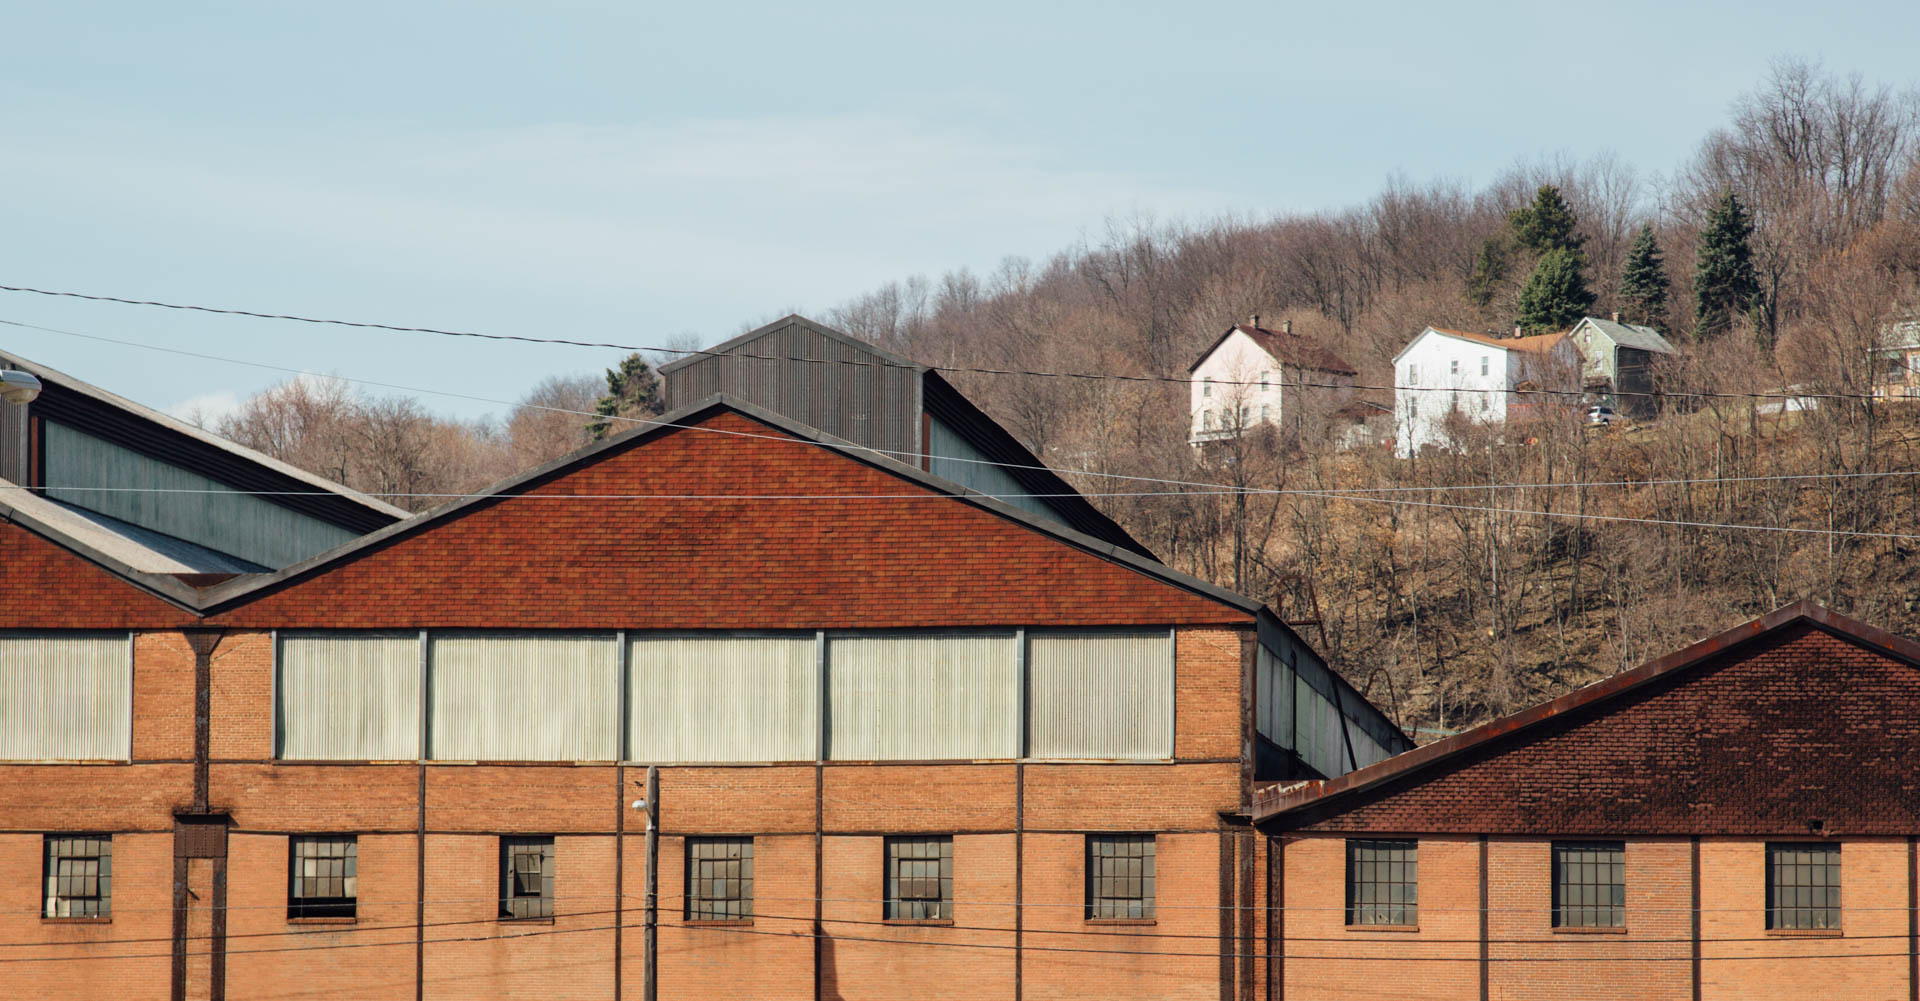 homes-on-hill-over-steel-mill-johnstown-pa-3533untitled